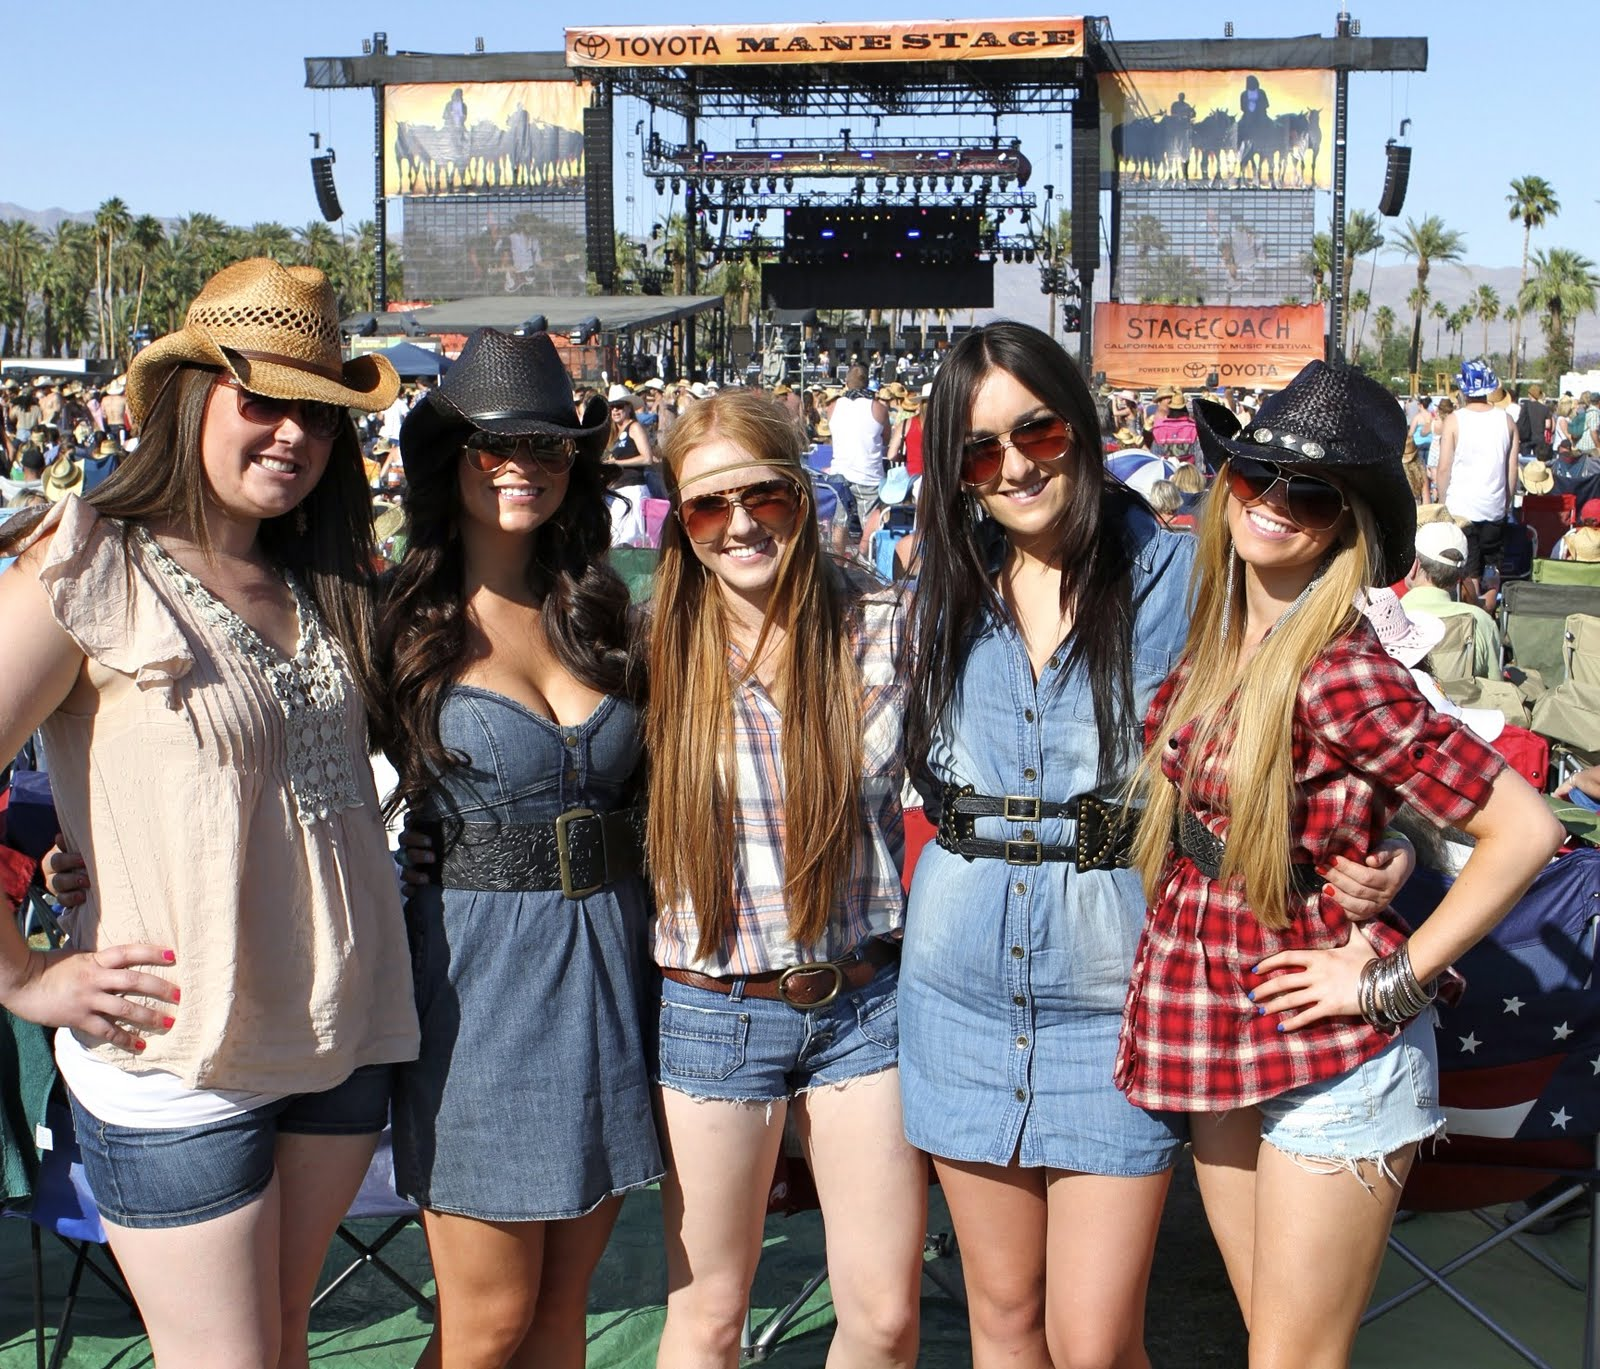 misskait saddled up at stagecoach 2011